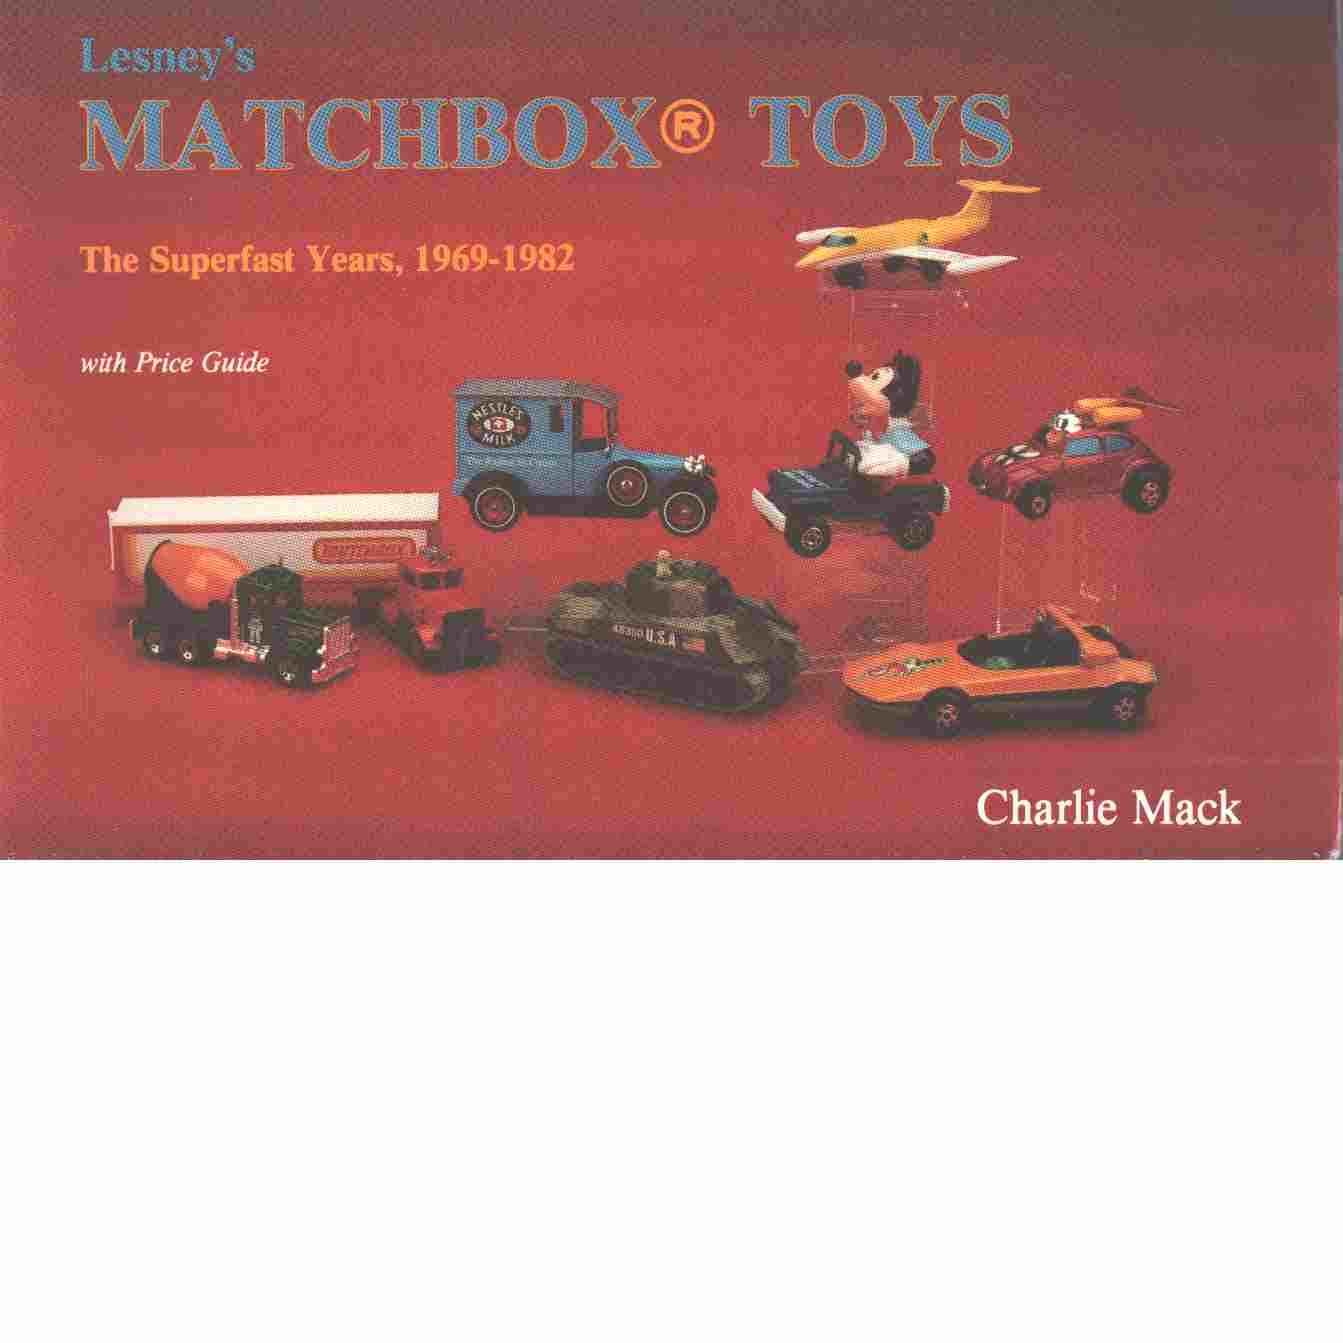 Lesney's Matchbox toys : the superfast years, 1969-1982 : with price guide - Mack, Charlie